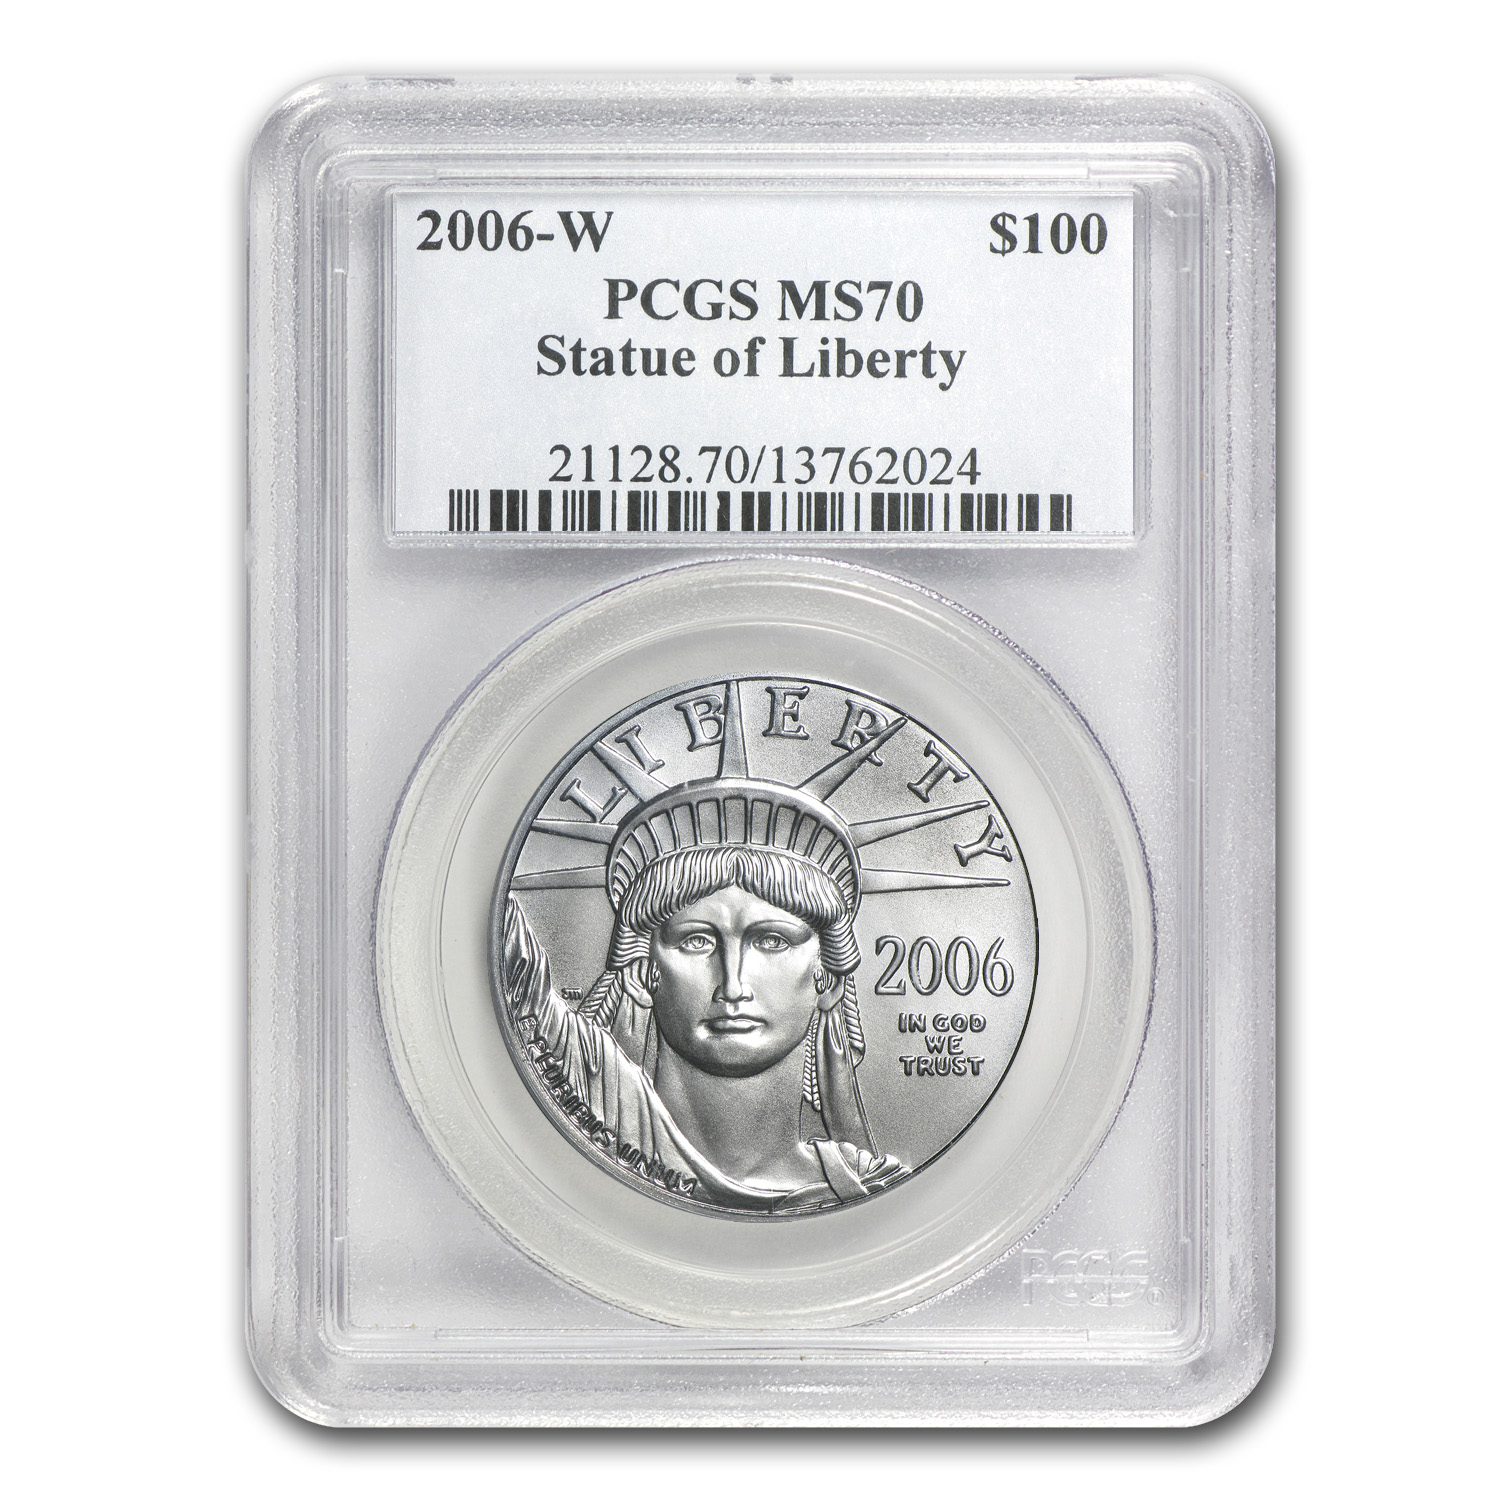 2006-W 1 oz Burnished Platinum American Eagle MS-70 PCGS